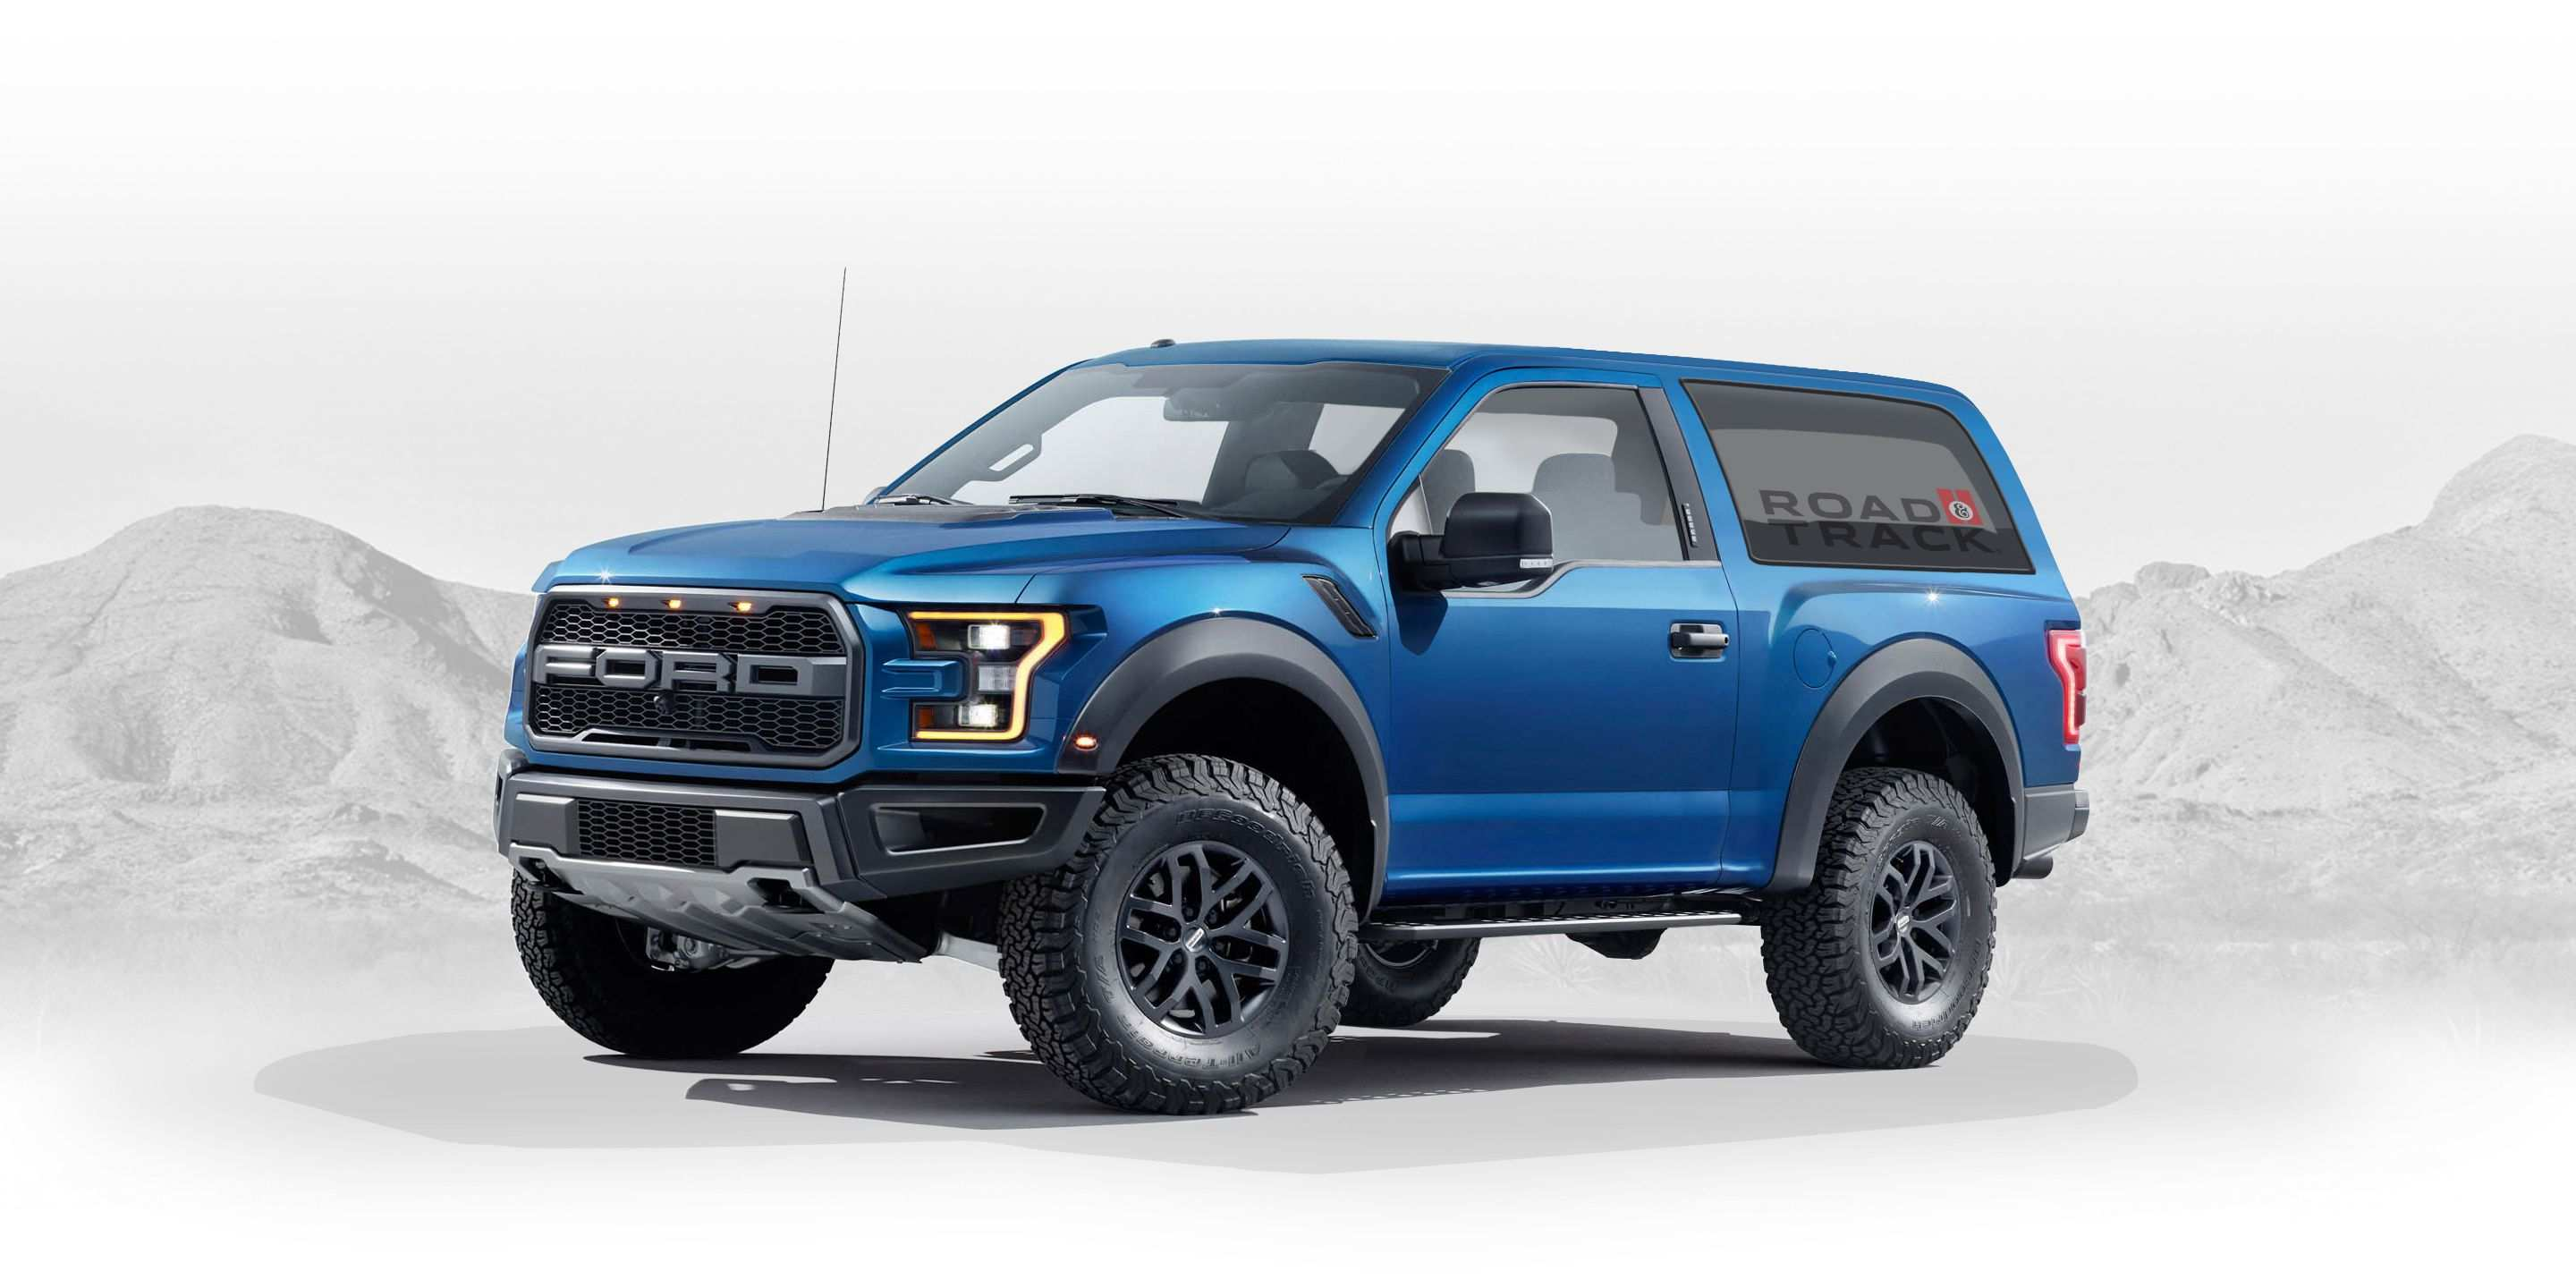 99 Best Review 2020 Ford Bronco And Ranger Price for 2020 Ford Bronco And Ranger